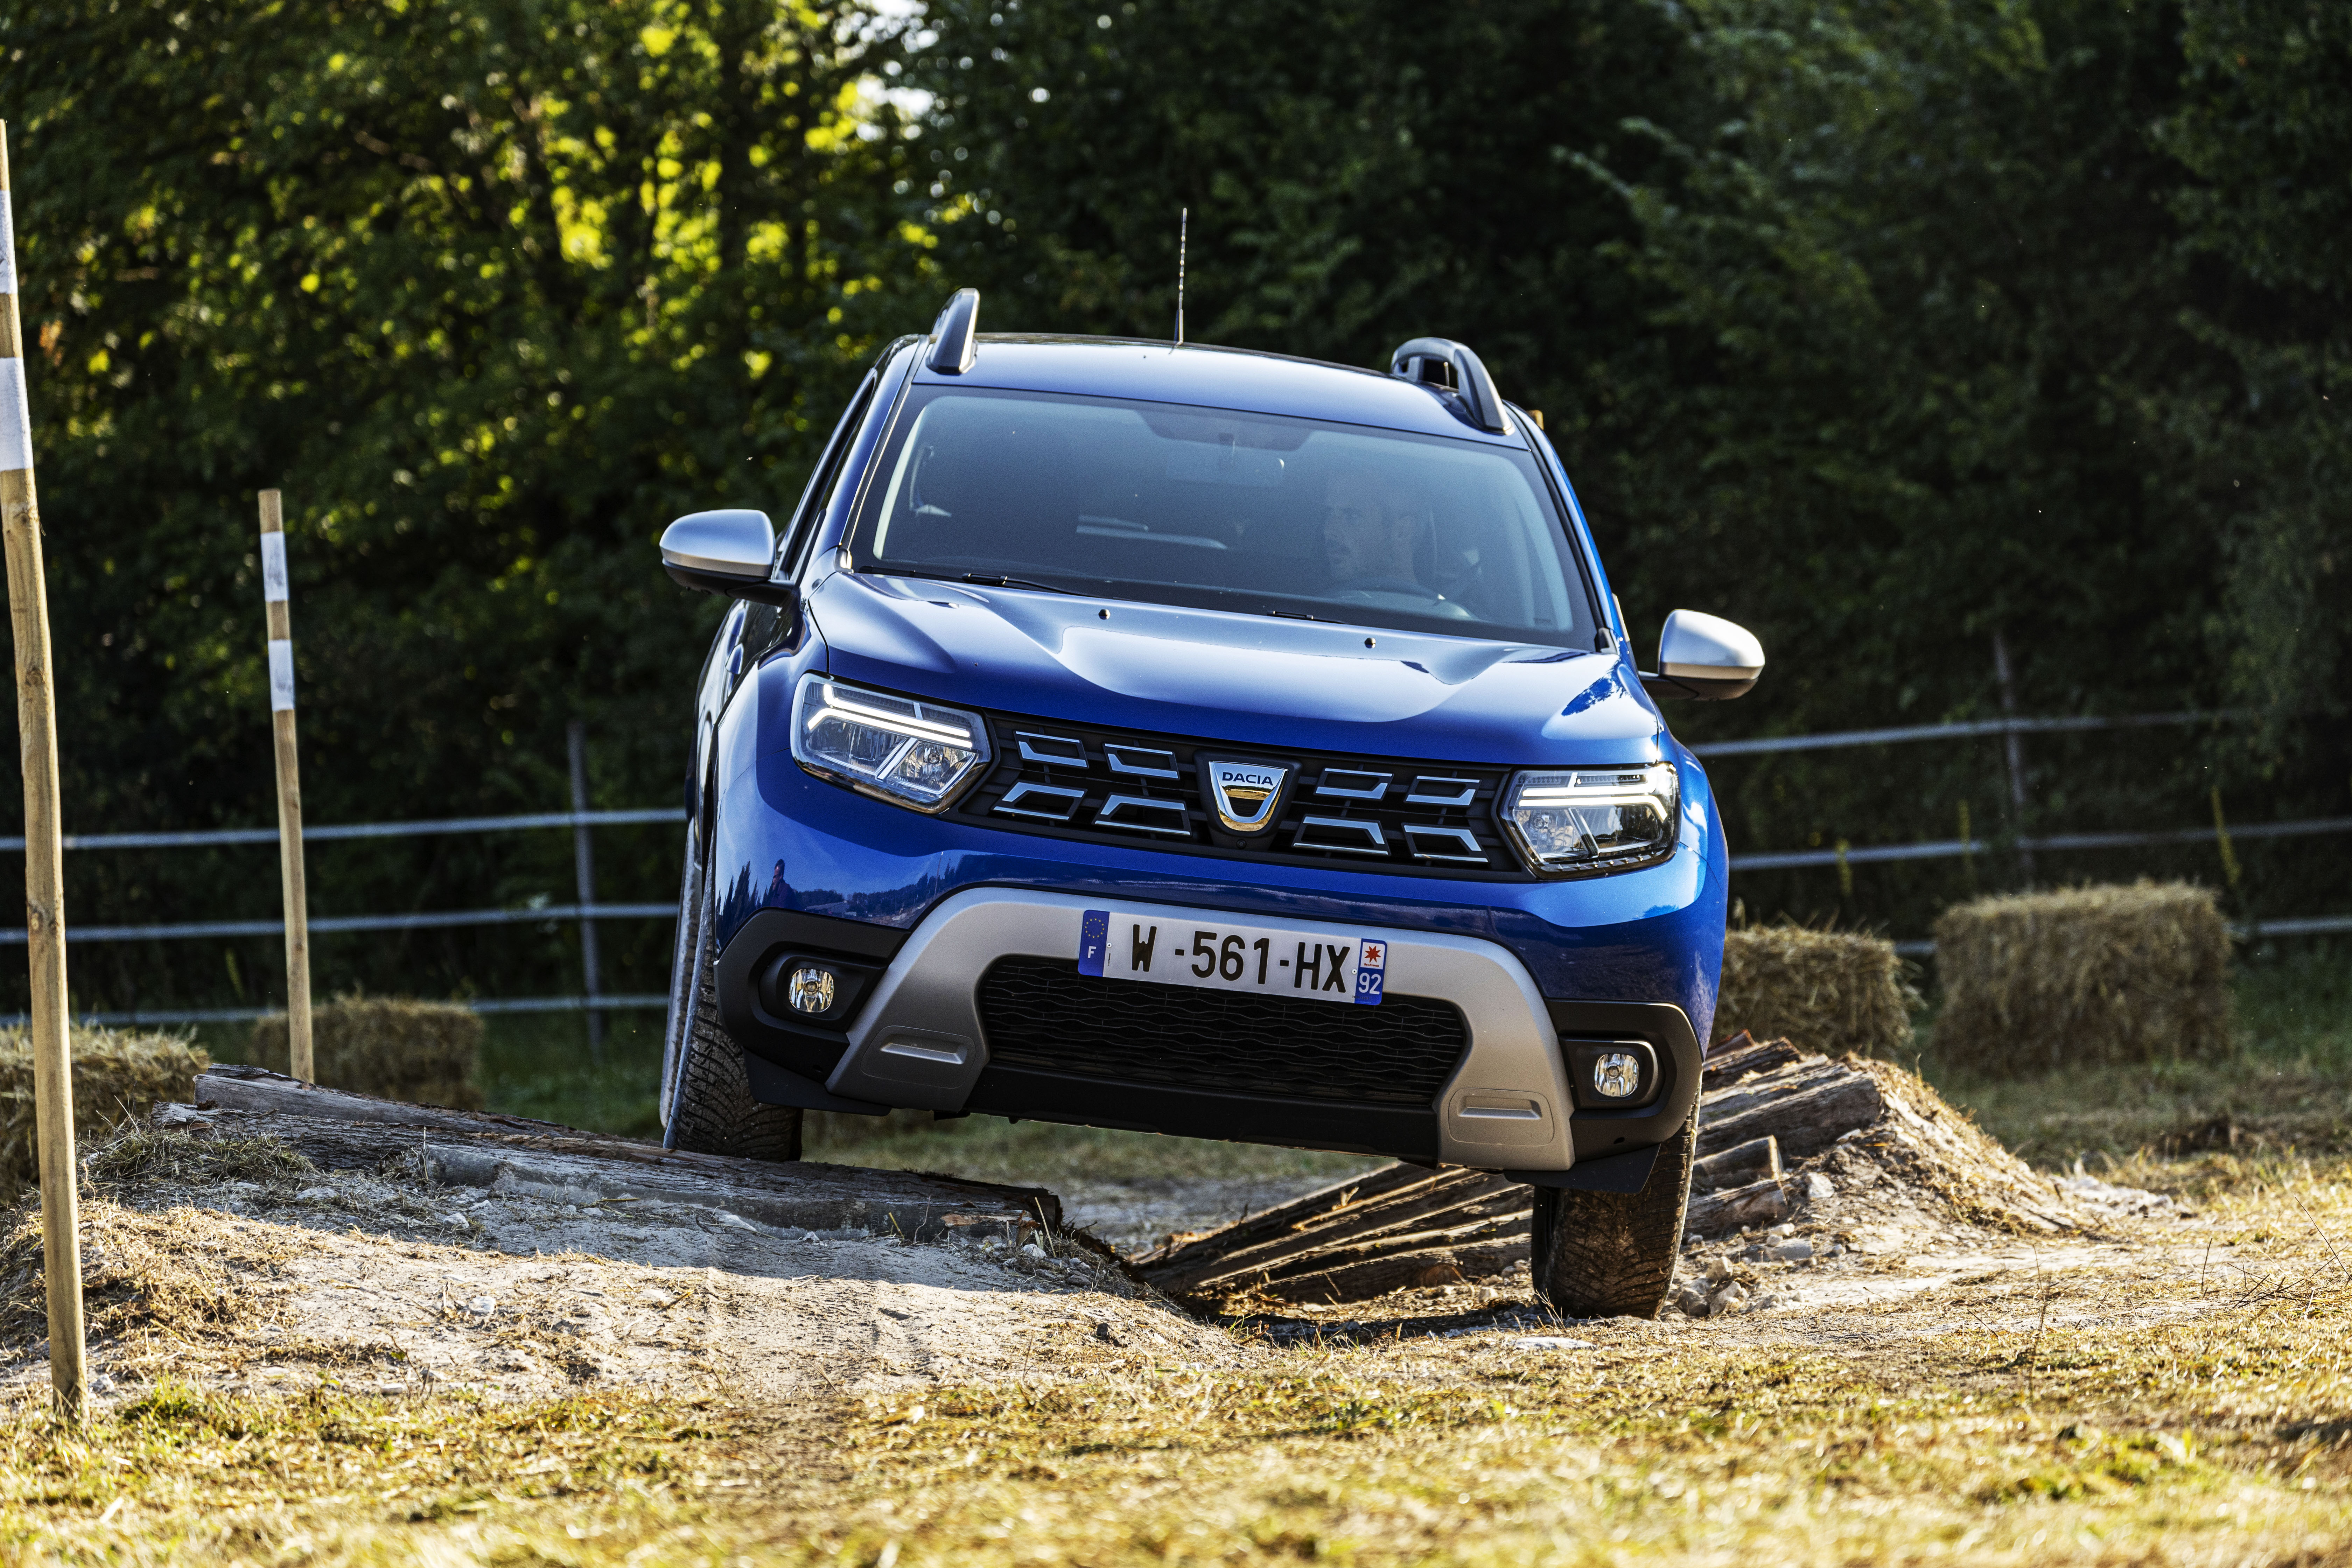 2021 - New Dacia Duster 4X4 - Iron Blue tests drive (2)